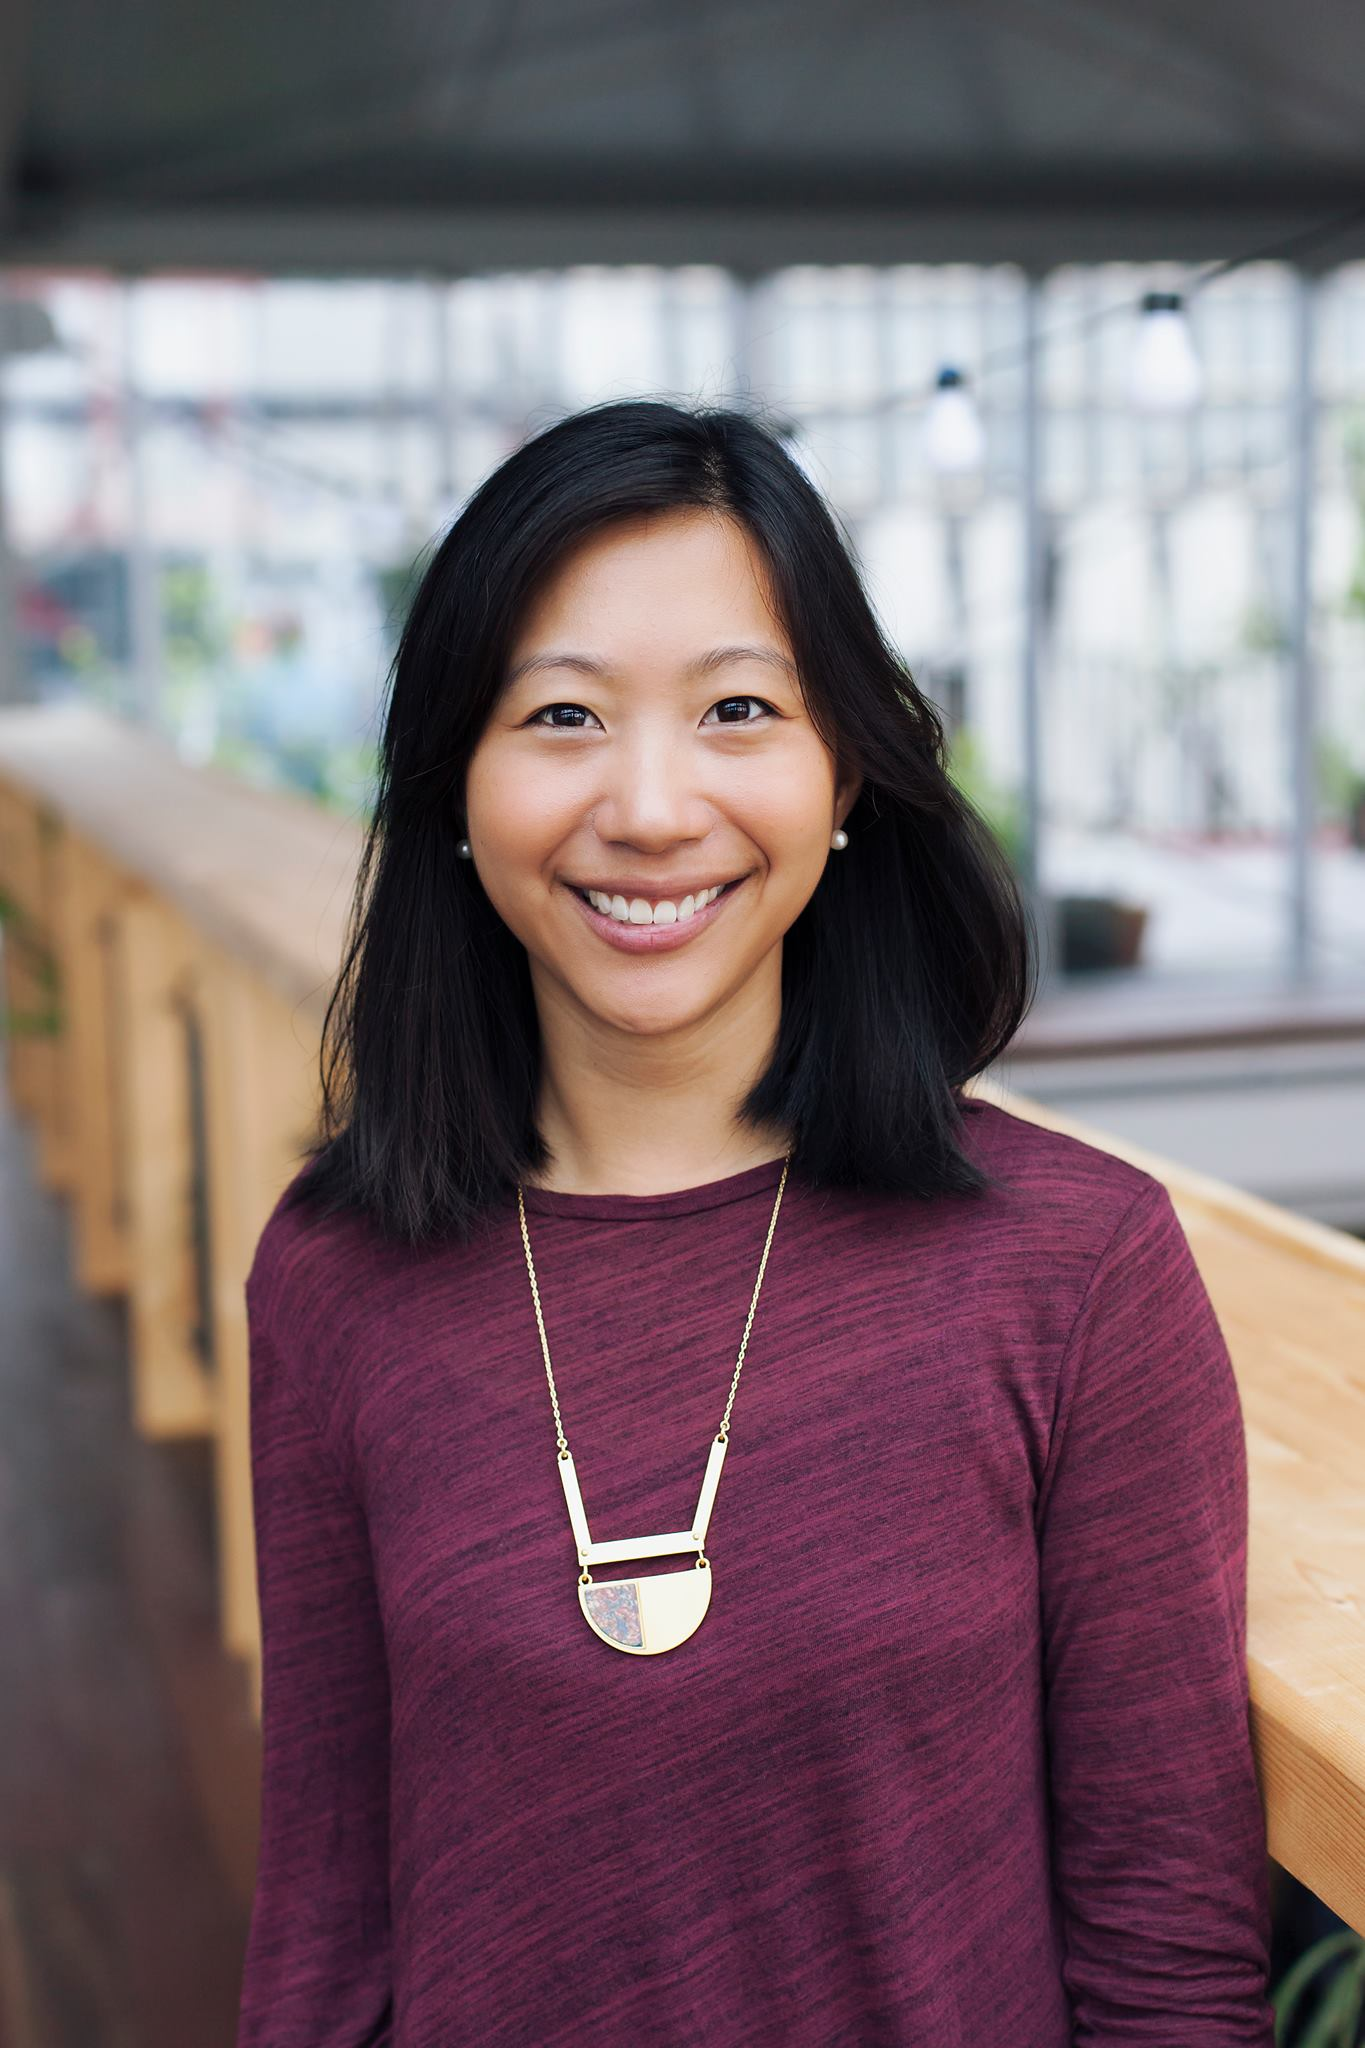 blog-Intersection-of-Work-Impact-and-Passion-January-Alumni-Profiles-tiffany-yu